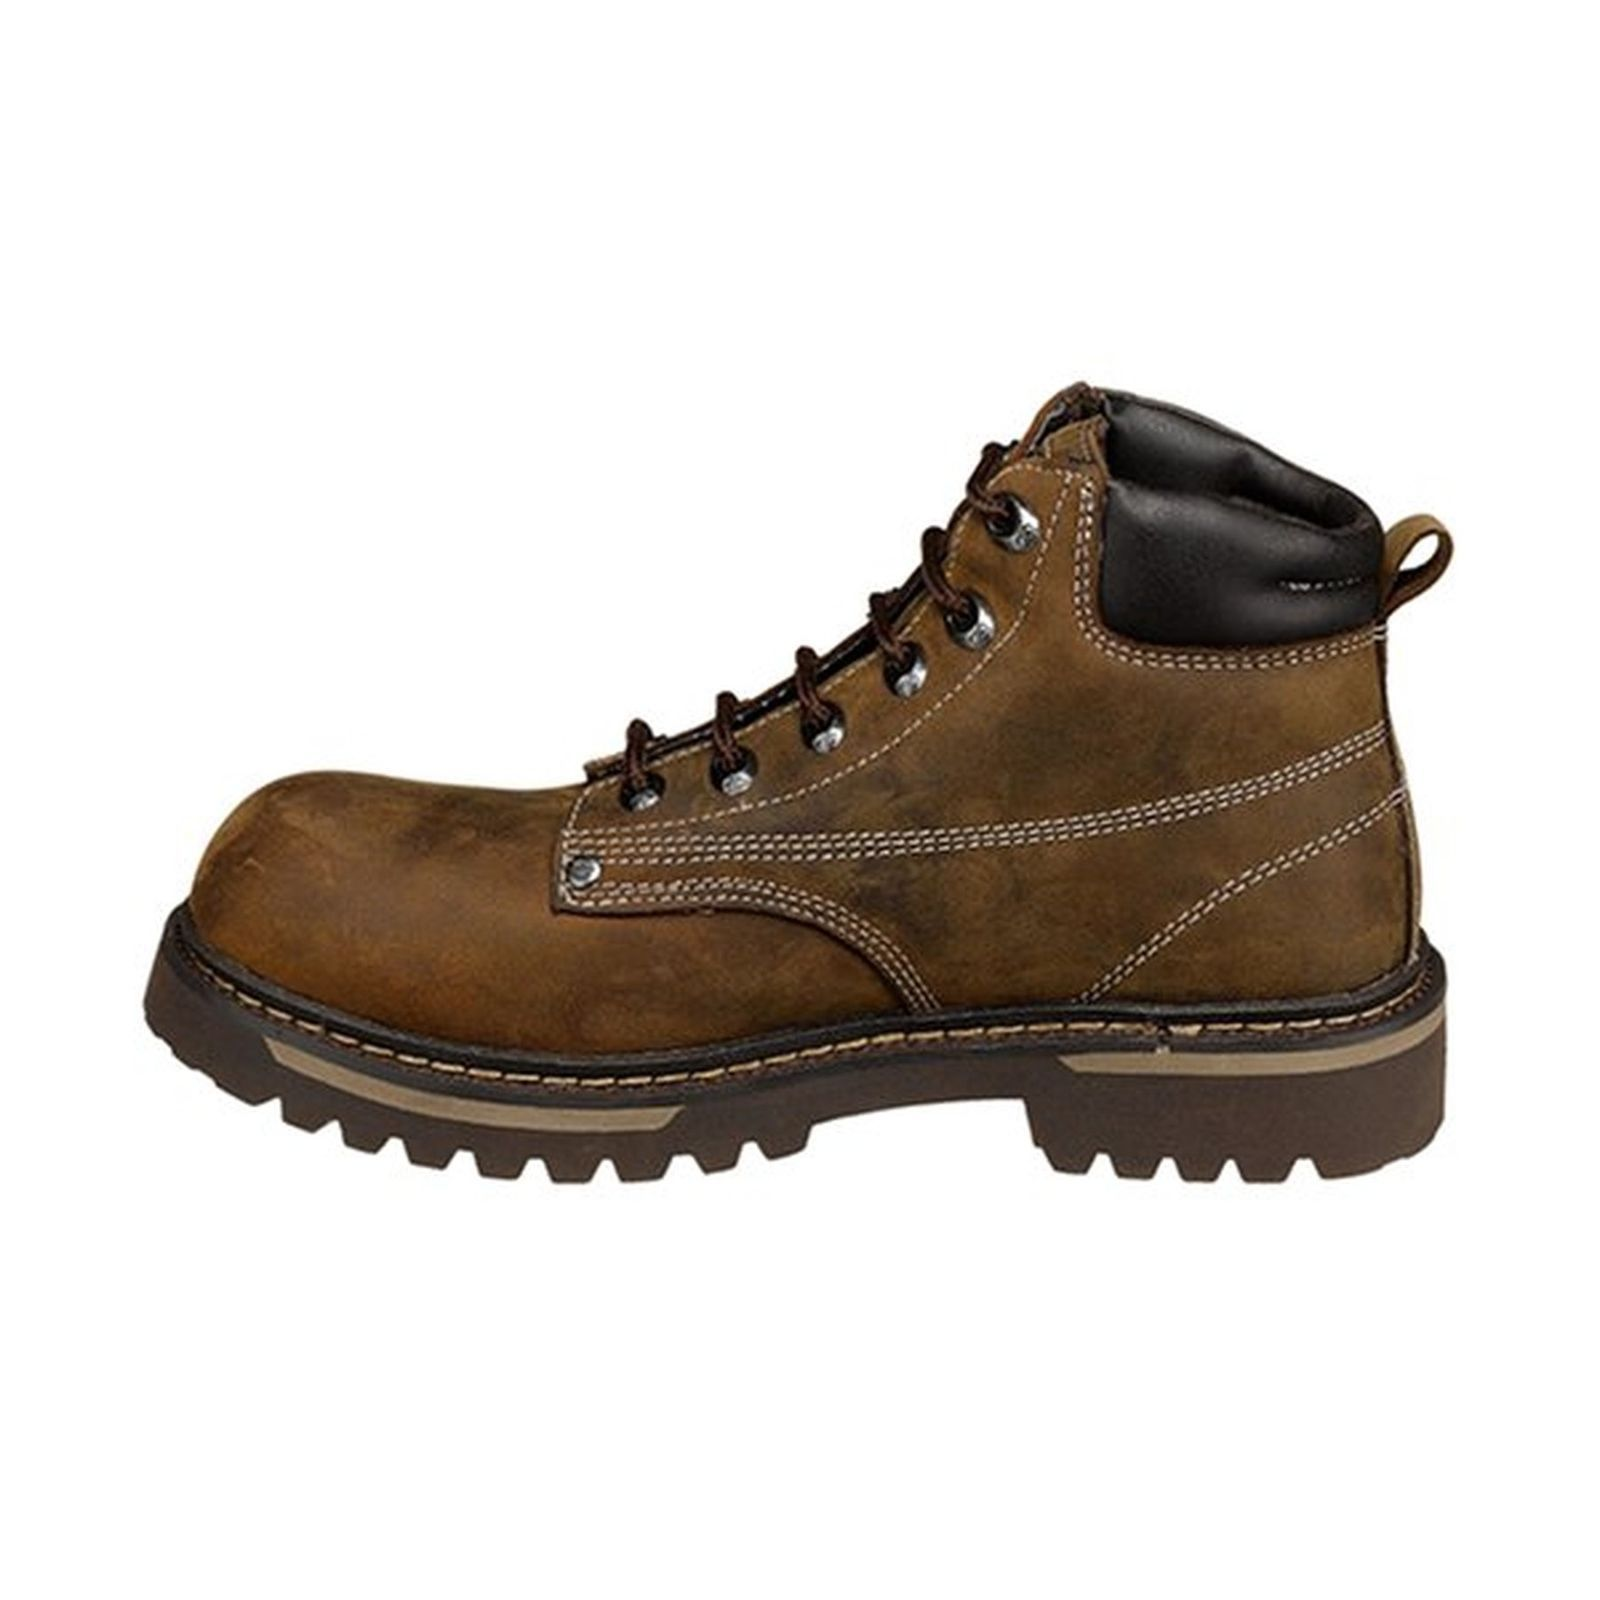 Mens Cool Cat Bully Ii Lace Up Boot Skechers Buy Cheap Pay With Paypal Best Place Online Clearance Great Deals Pick A Best Online M6tOA